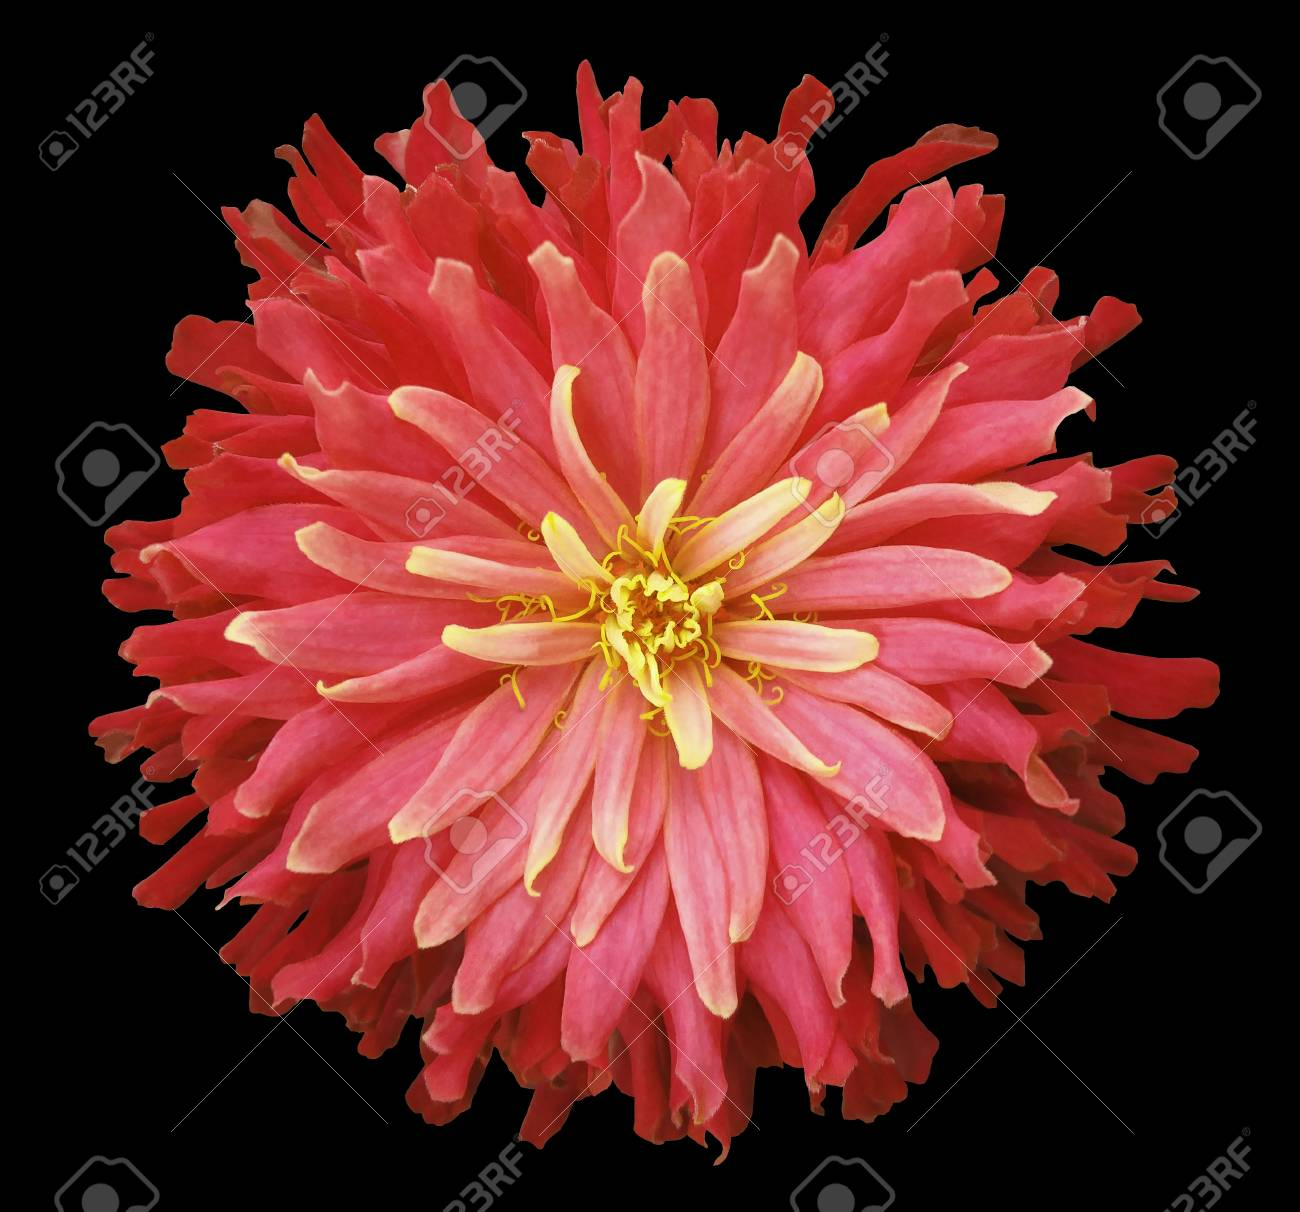 Red Pink Yellow Flower On A Black Background Isolated With Stock